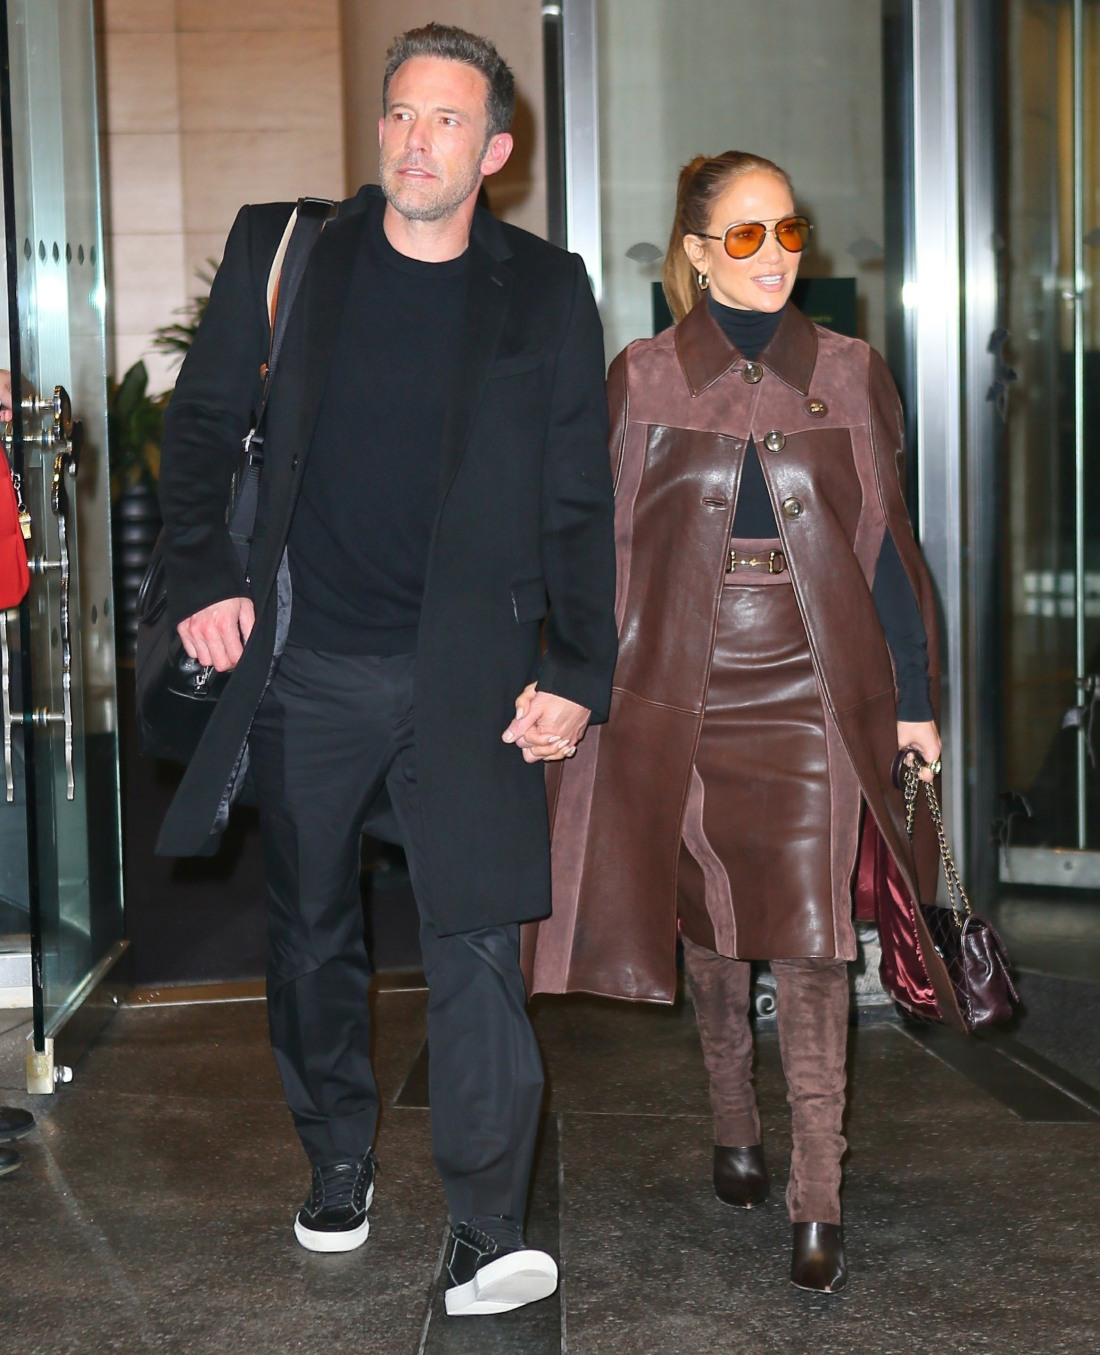 Jennifer Lopez and Ben Affleck check out of the Mandarin Hotel